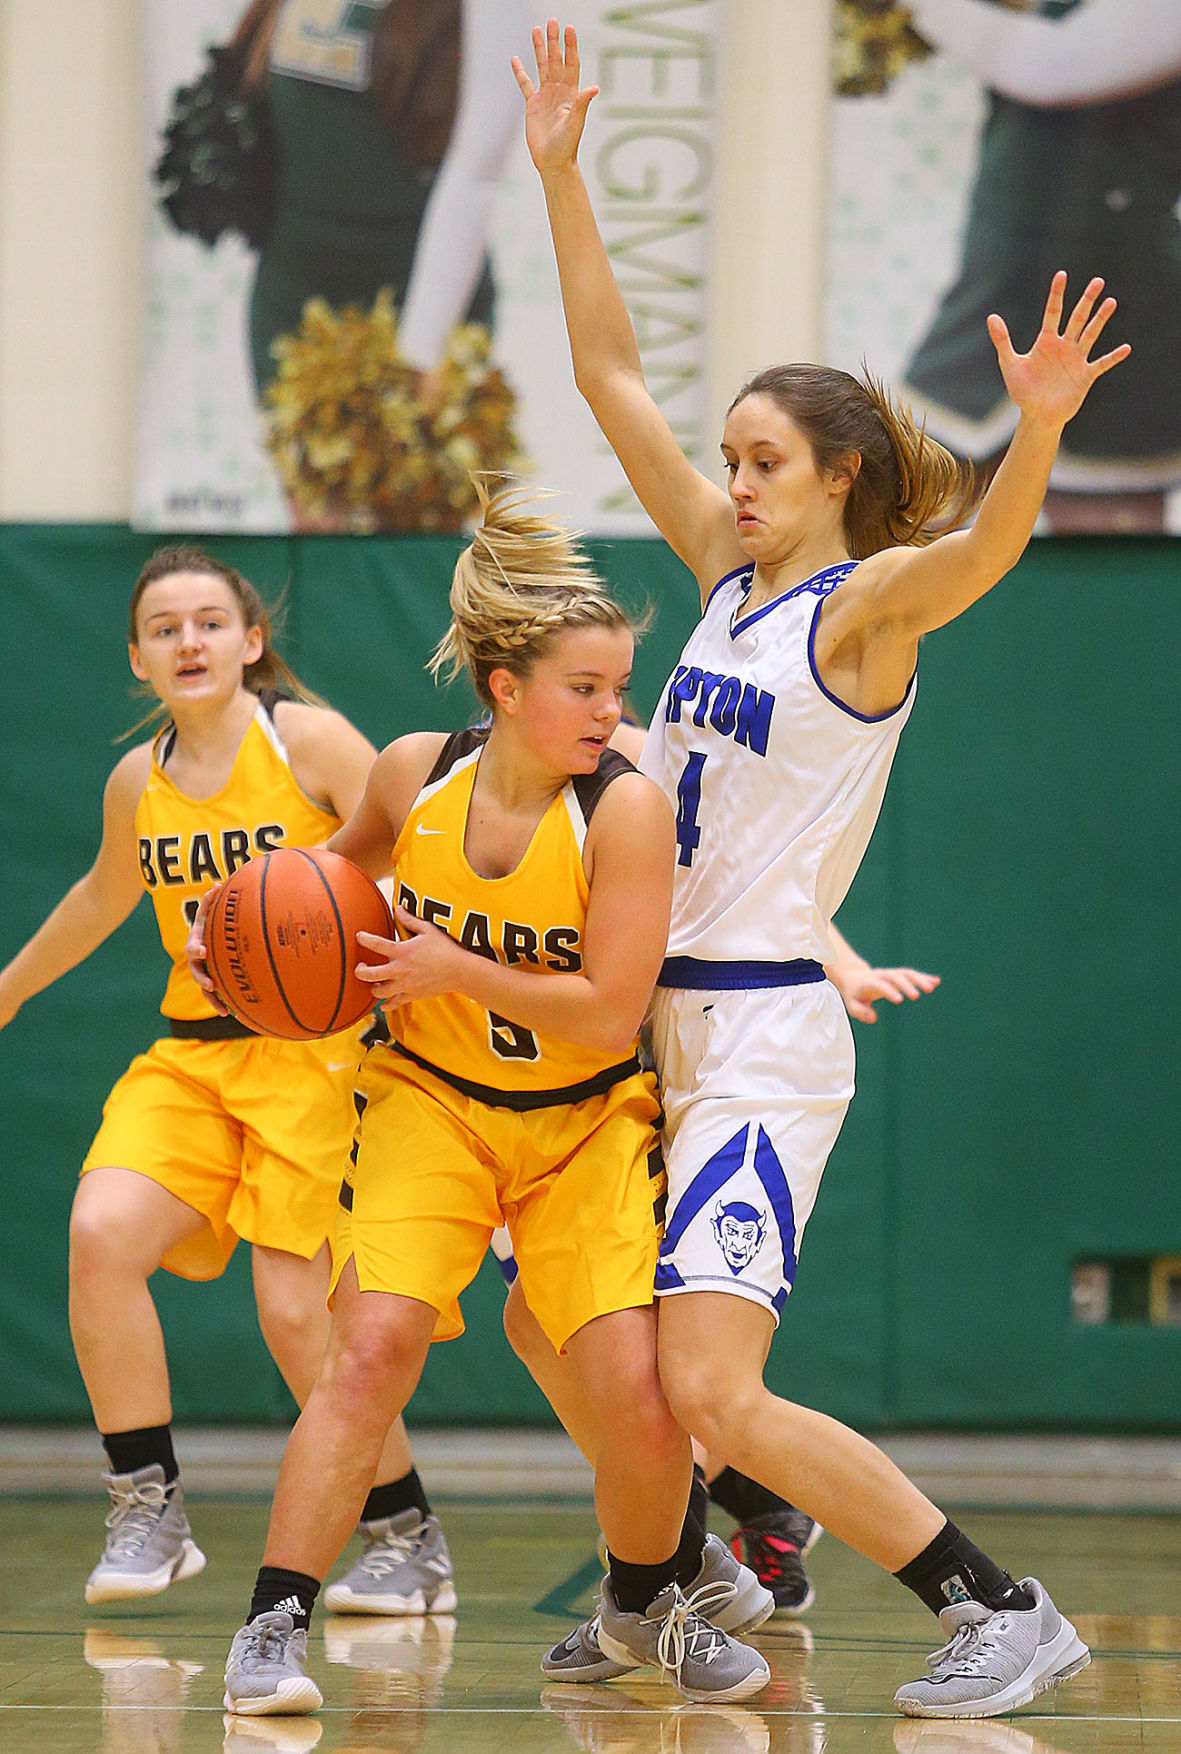 Tipton vs MC GBB 03.jpg